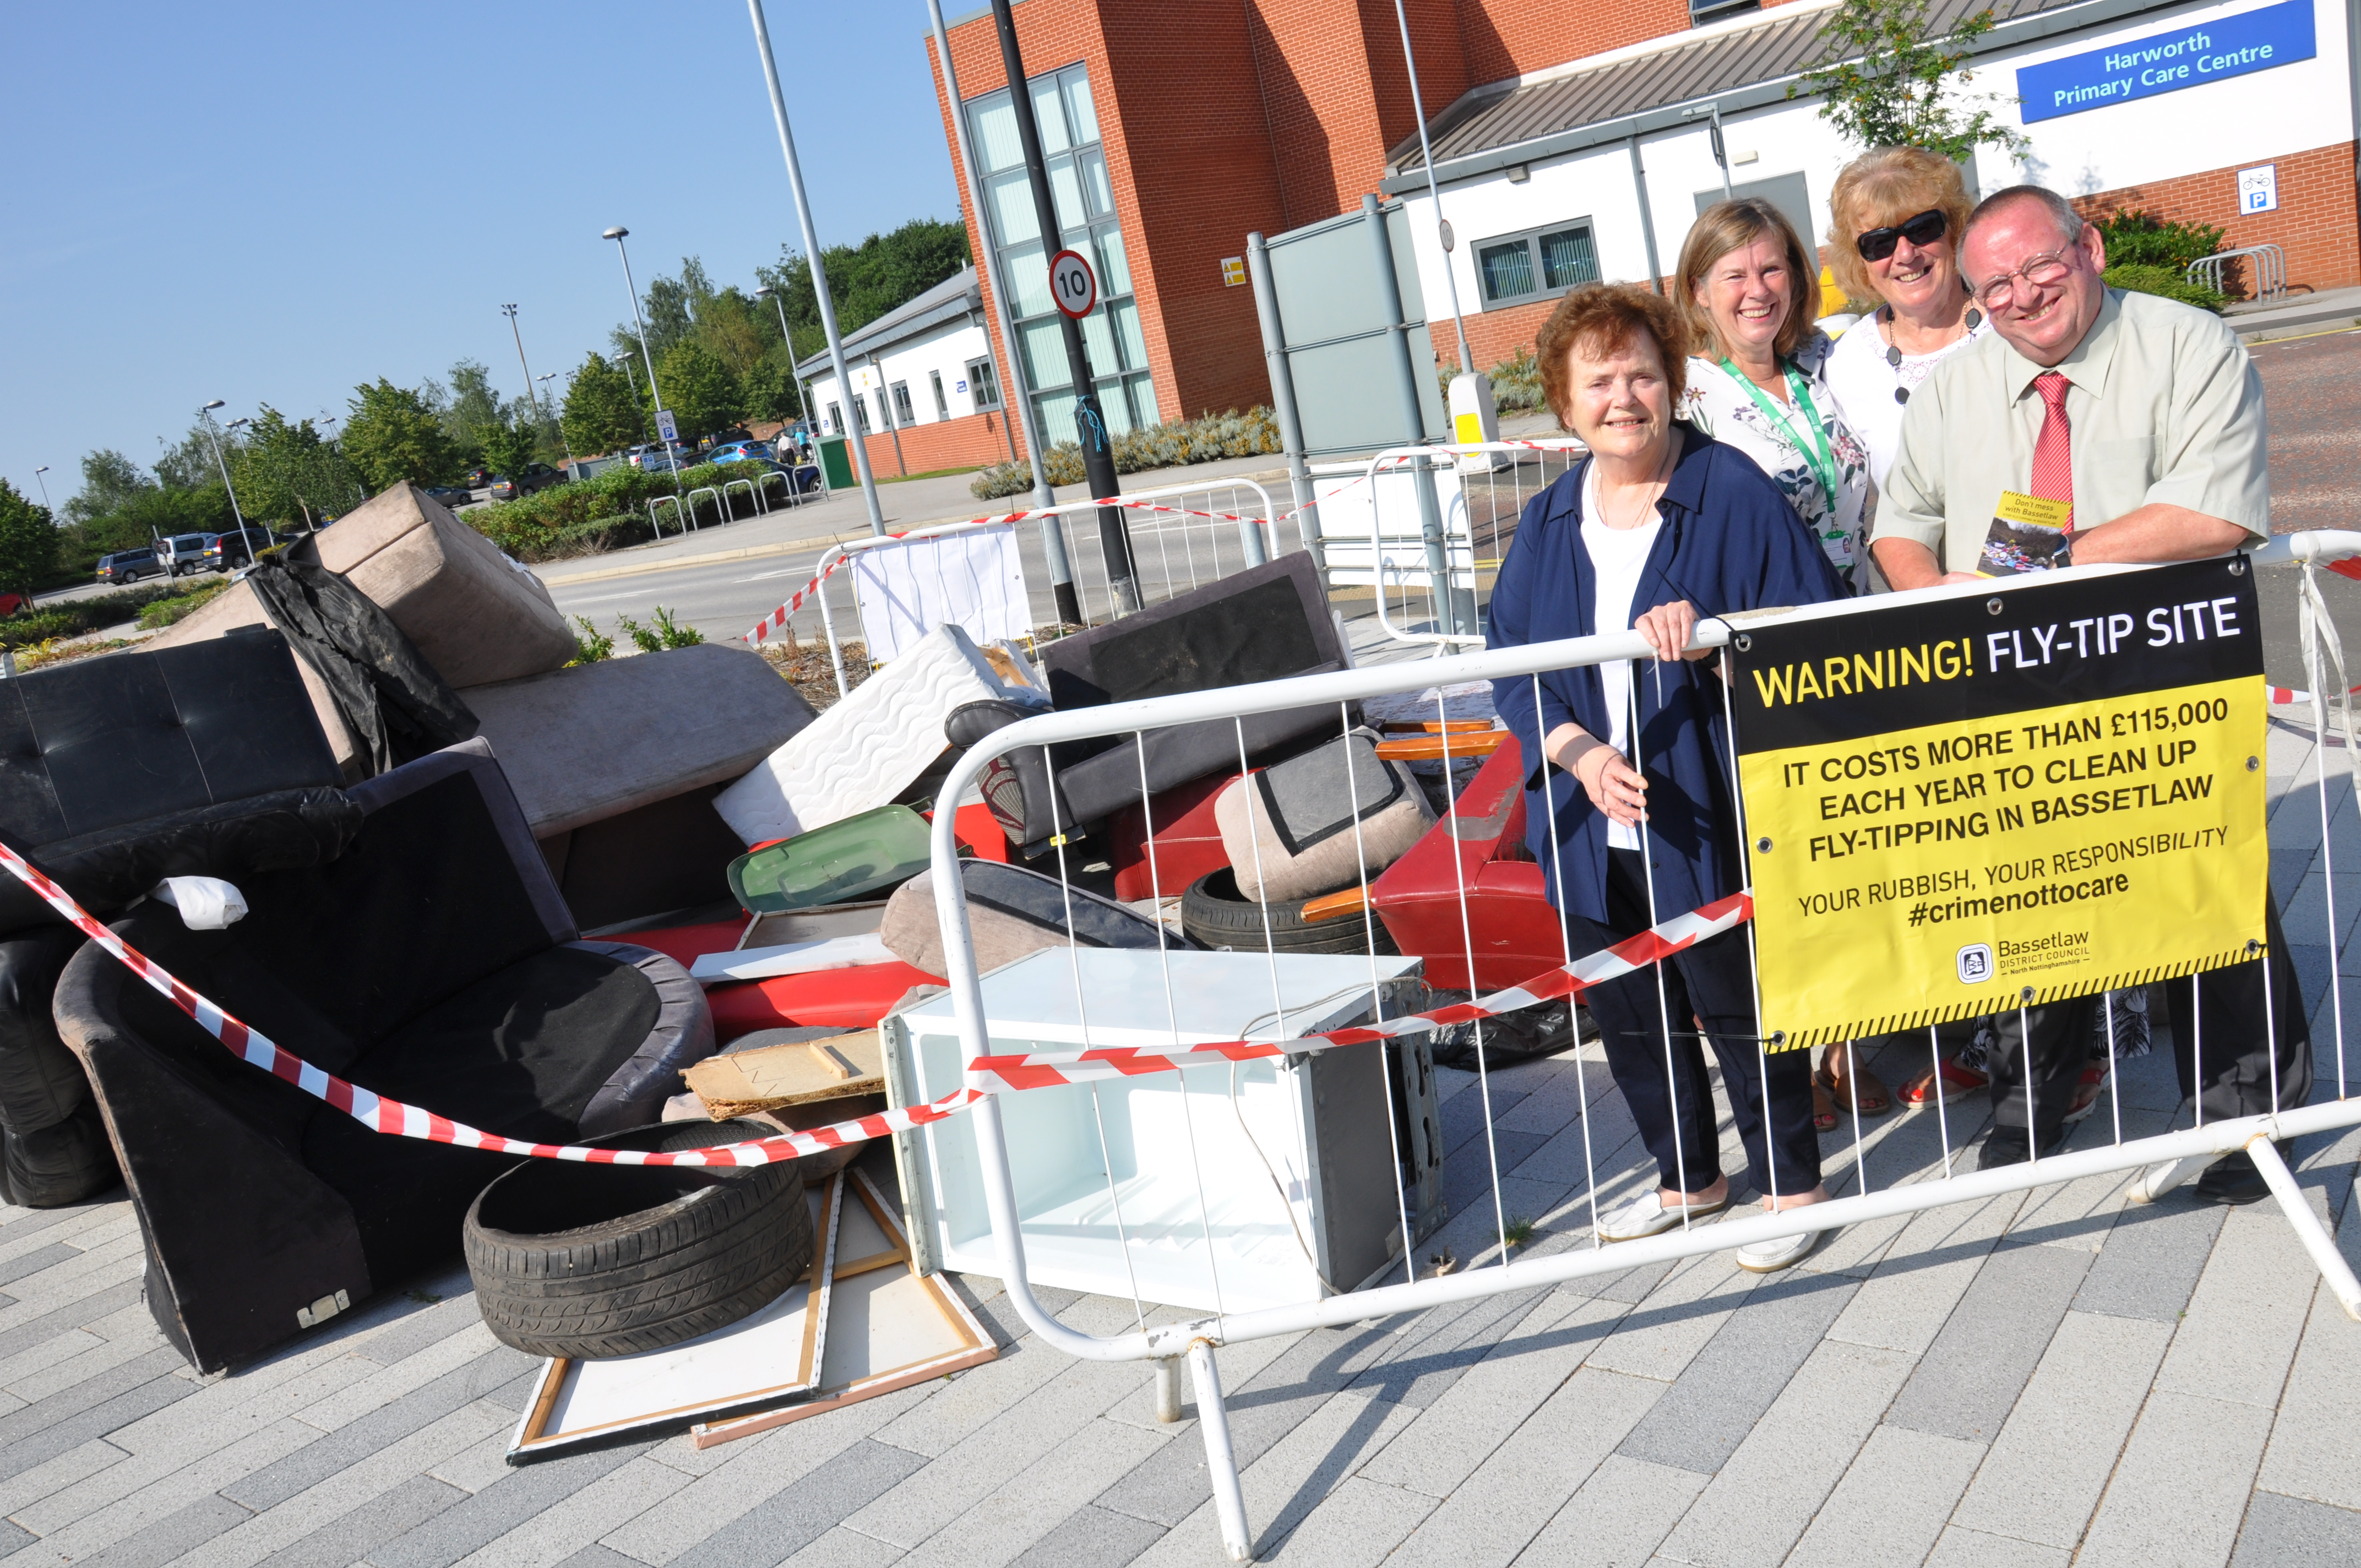 Fly-tipping hits high street